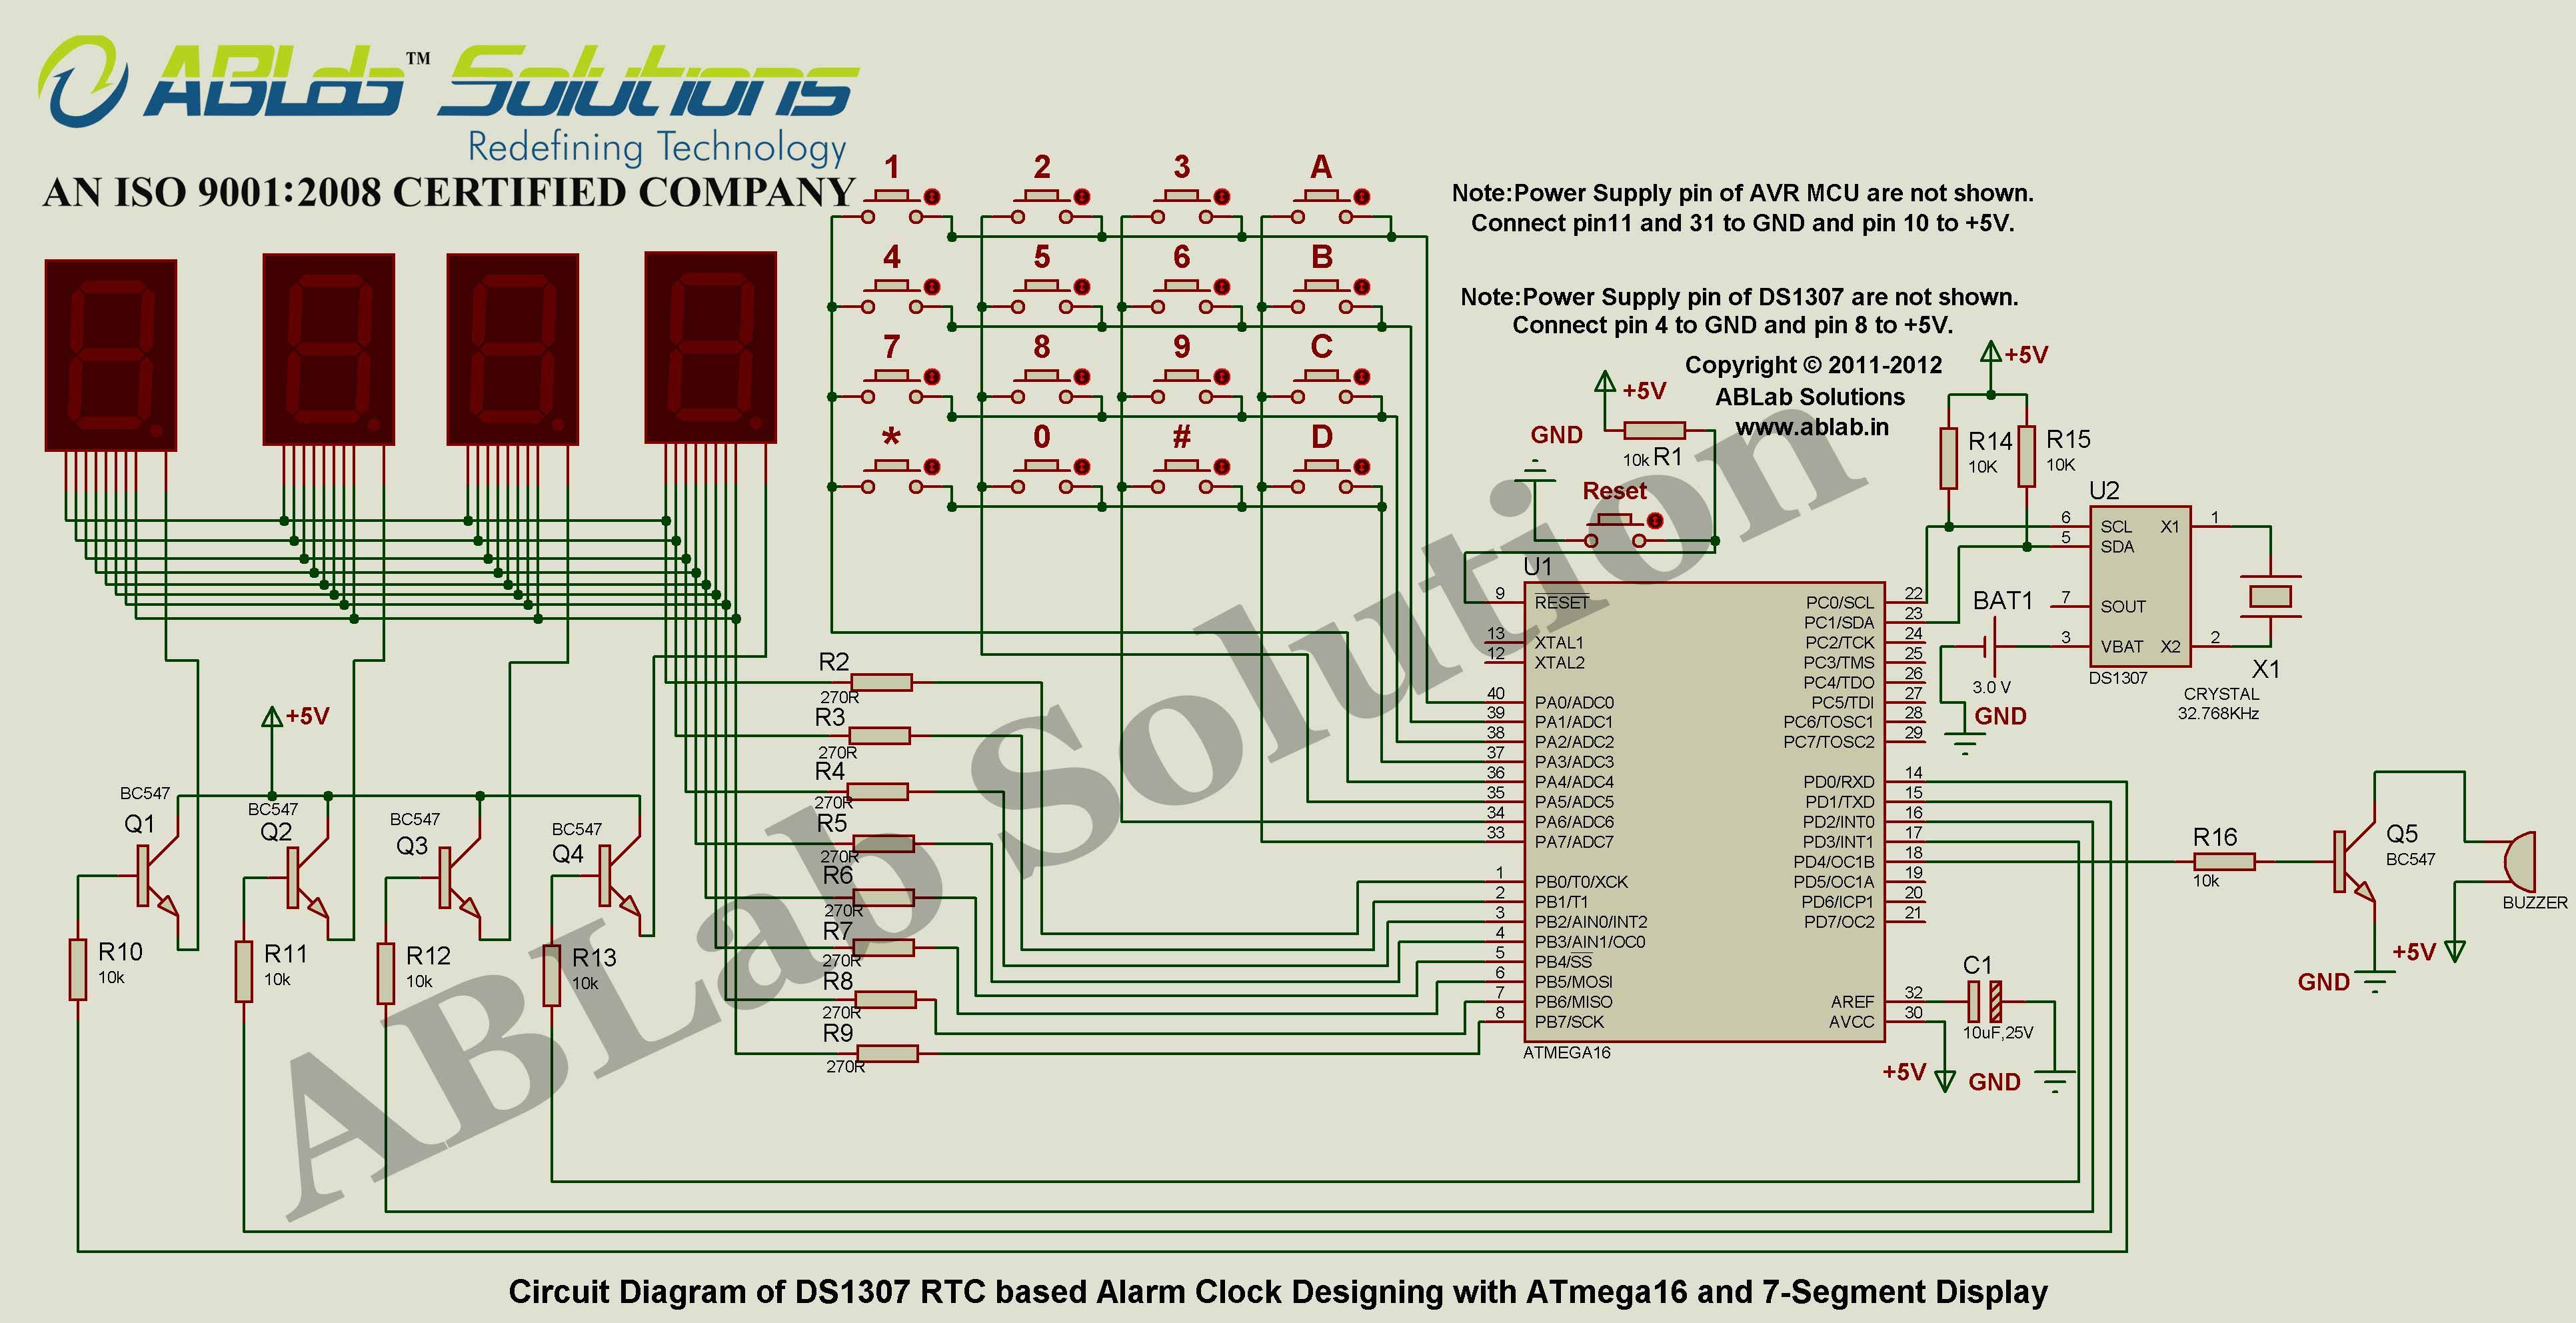 Ds1307 Rtc Based Alarm Clock Designing With Avr Atmega16 7 Segment Display Circuit Diagram Microcontroller And Ablab Solutions